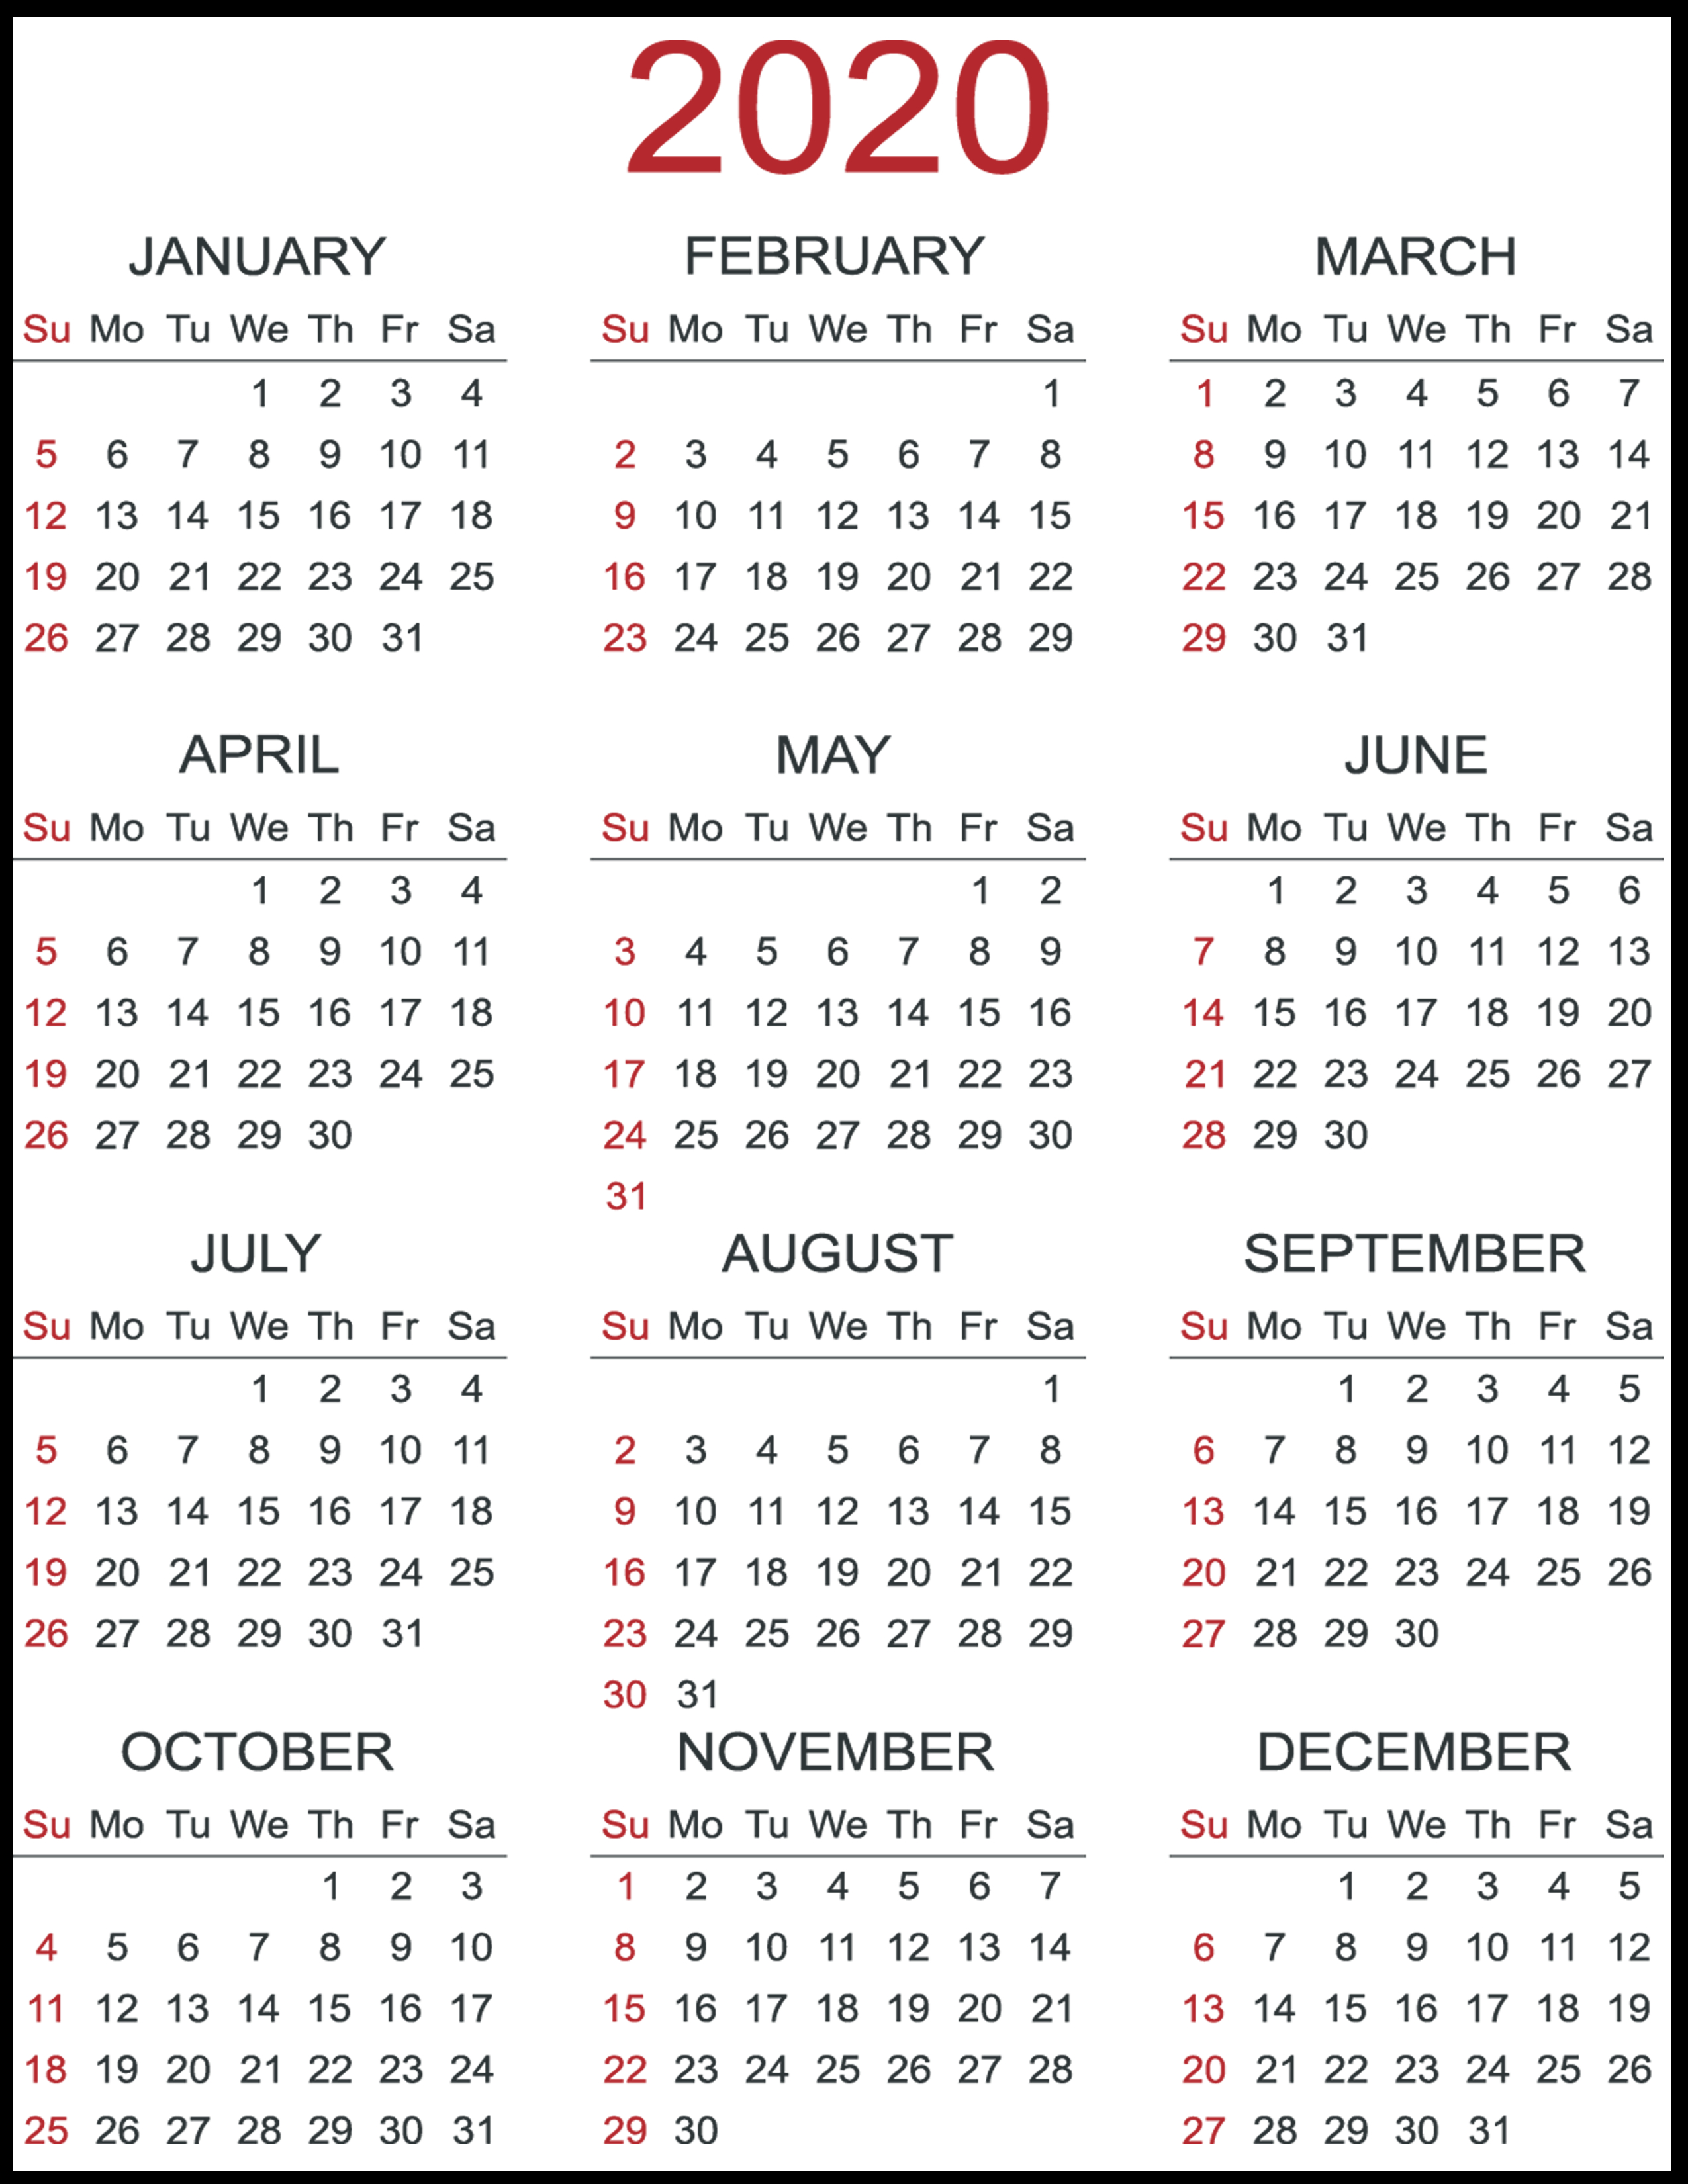 Calendars For 2020 And 2020 - Wpa.wpart.co